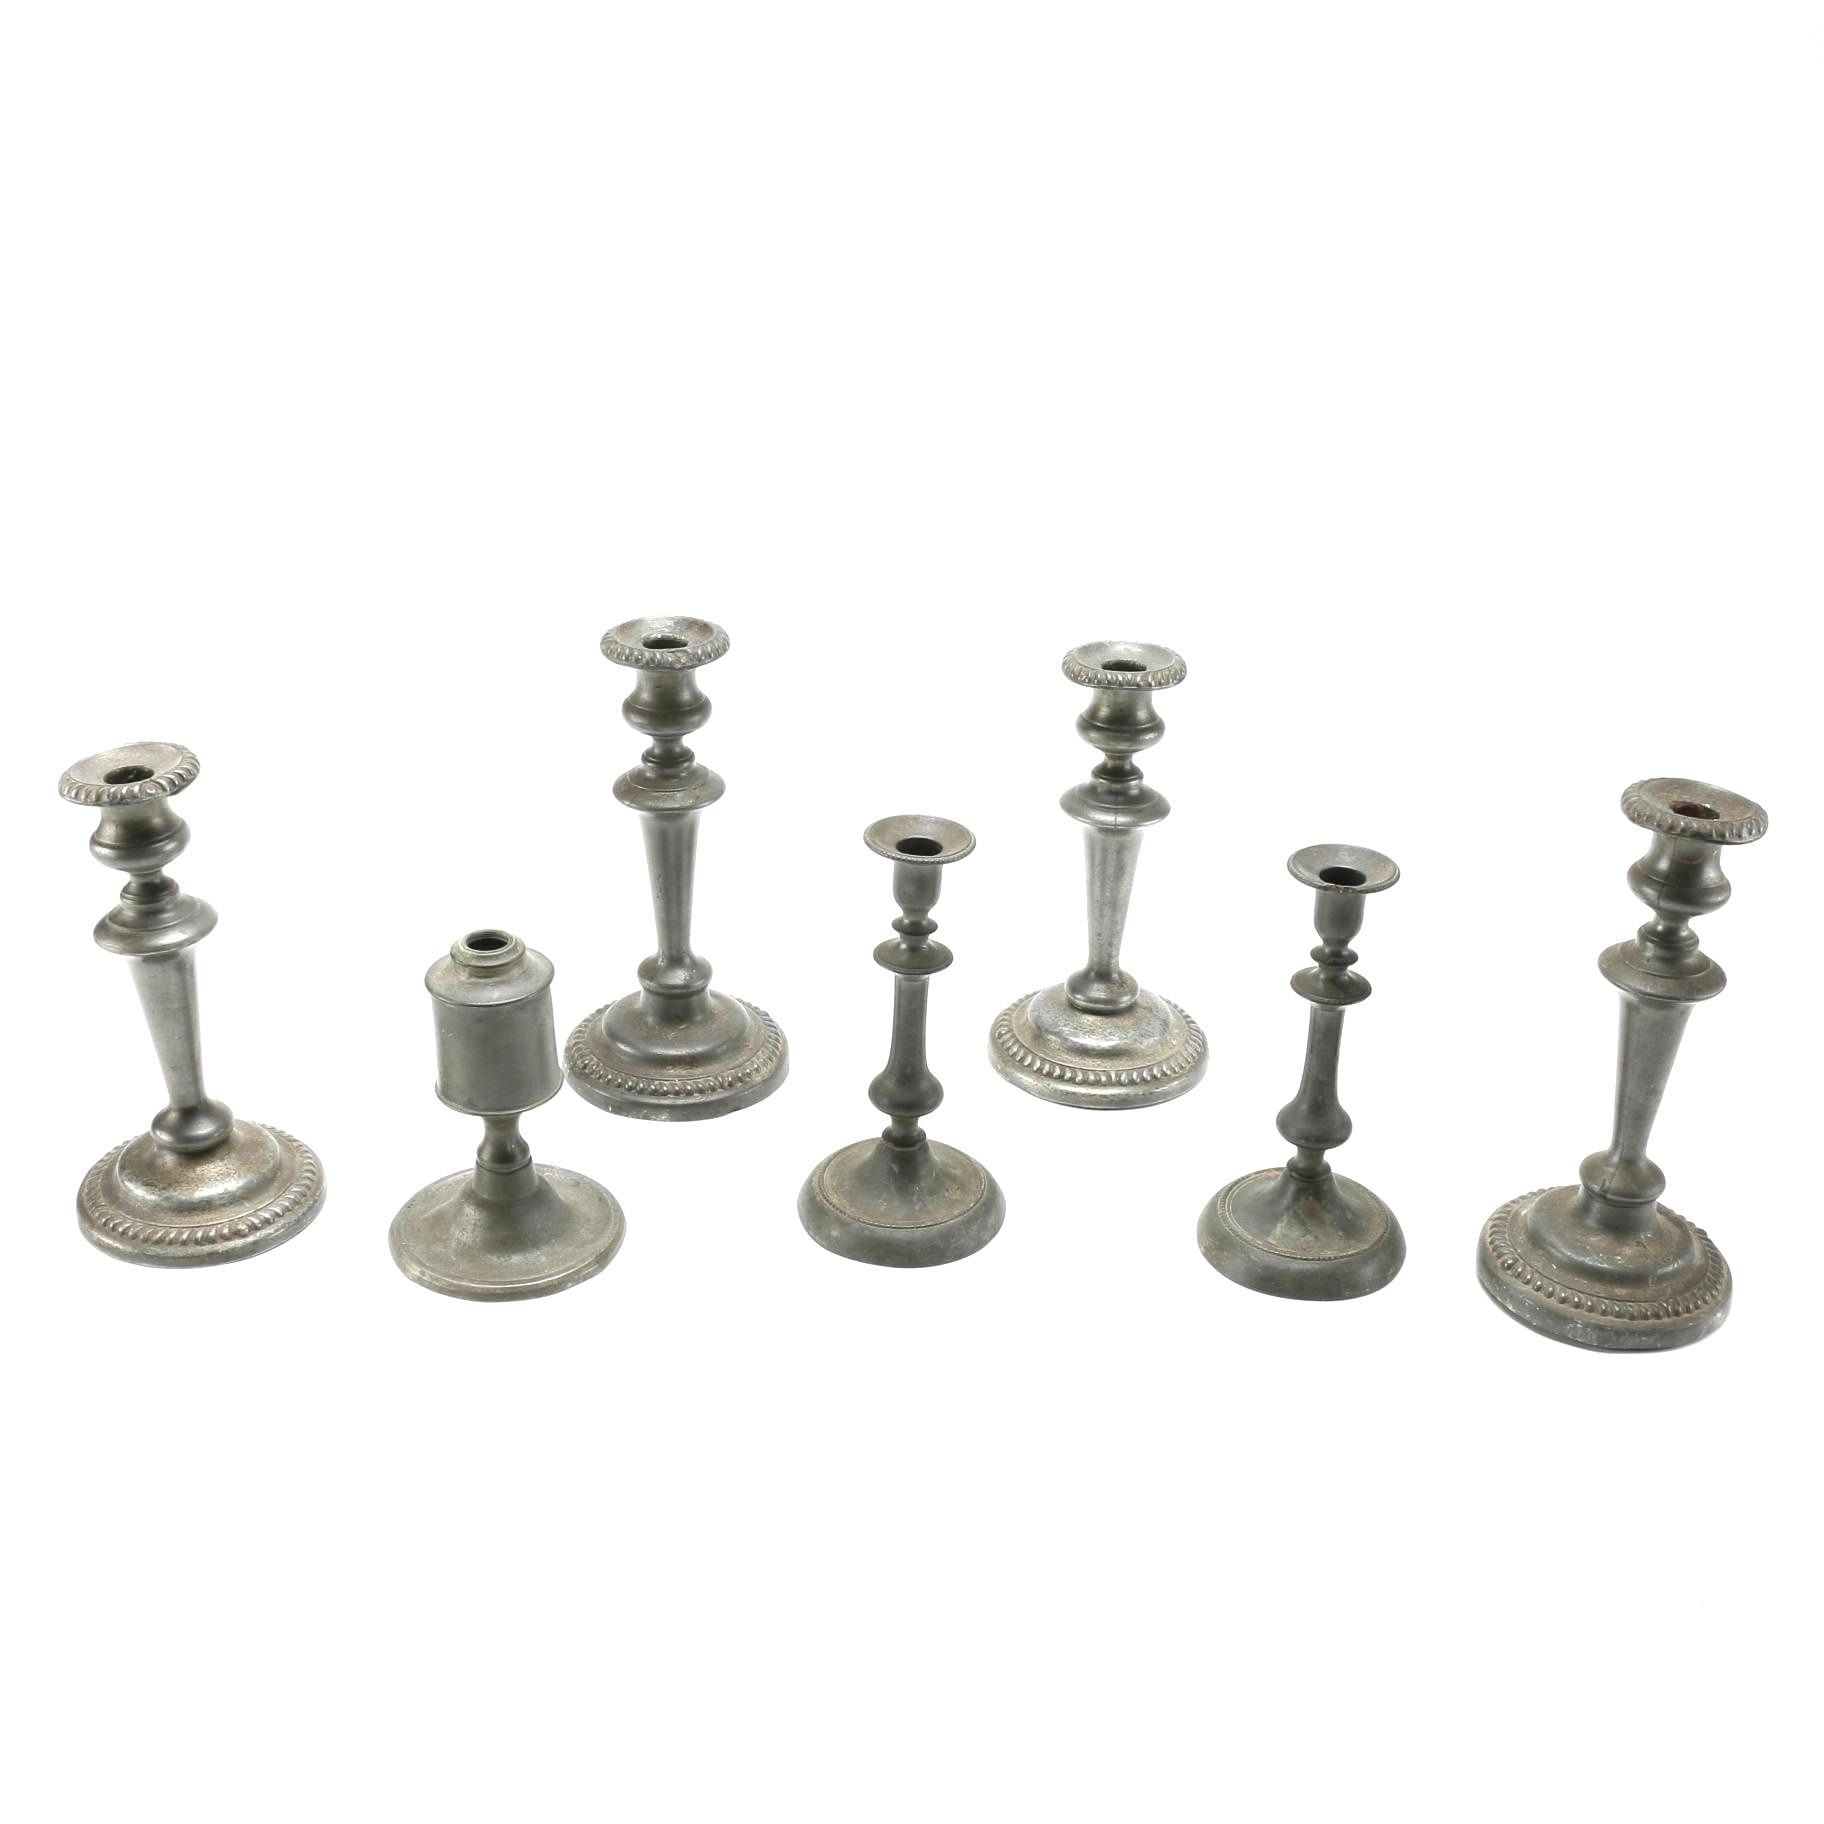 Pewter Candle Holder Assortment